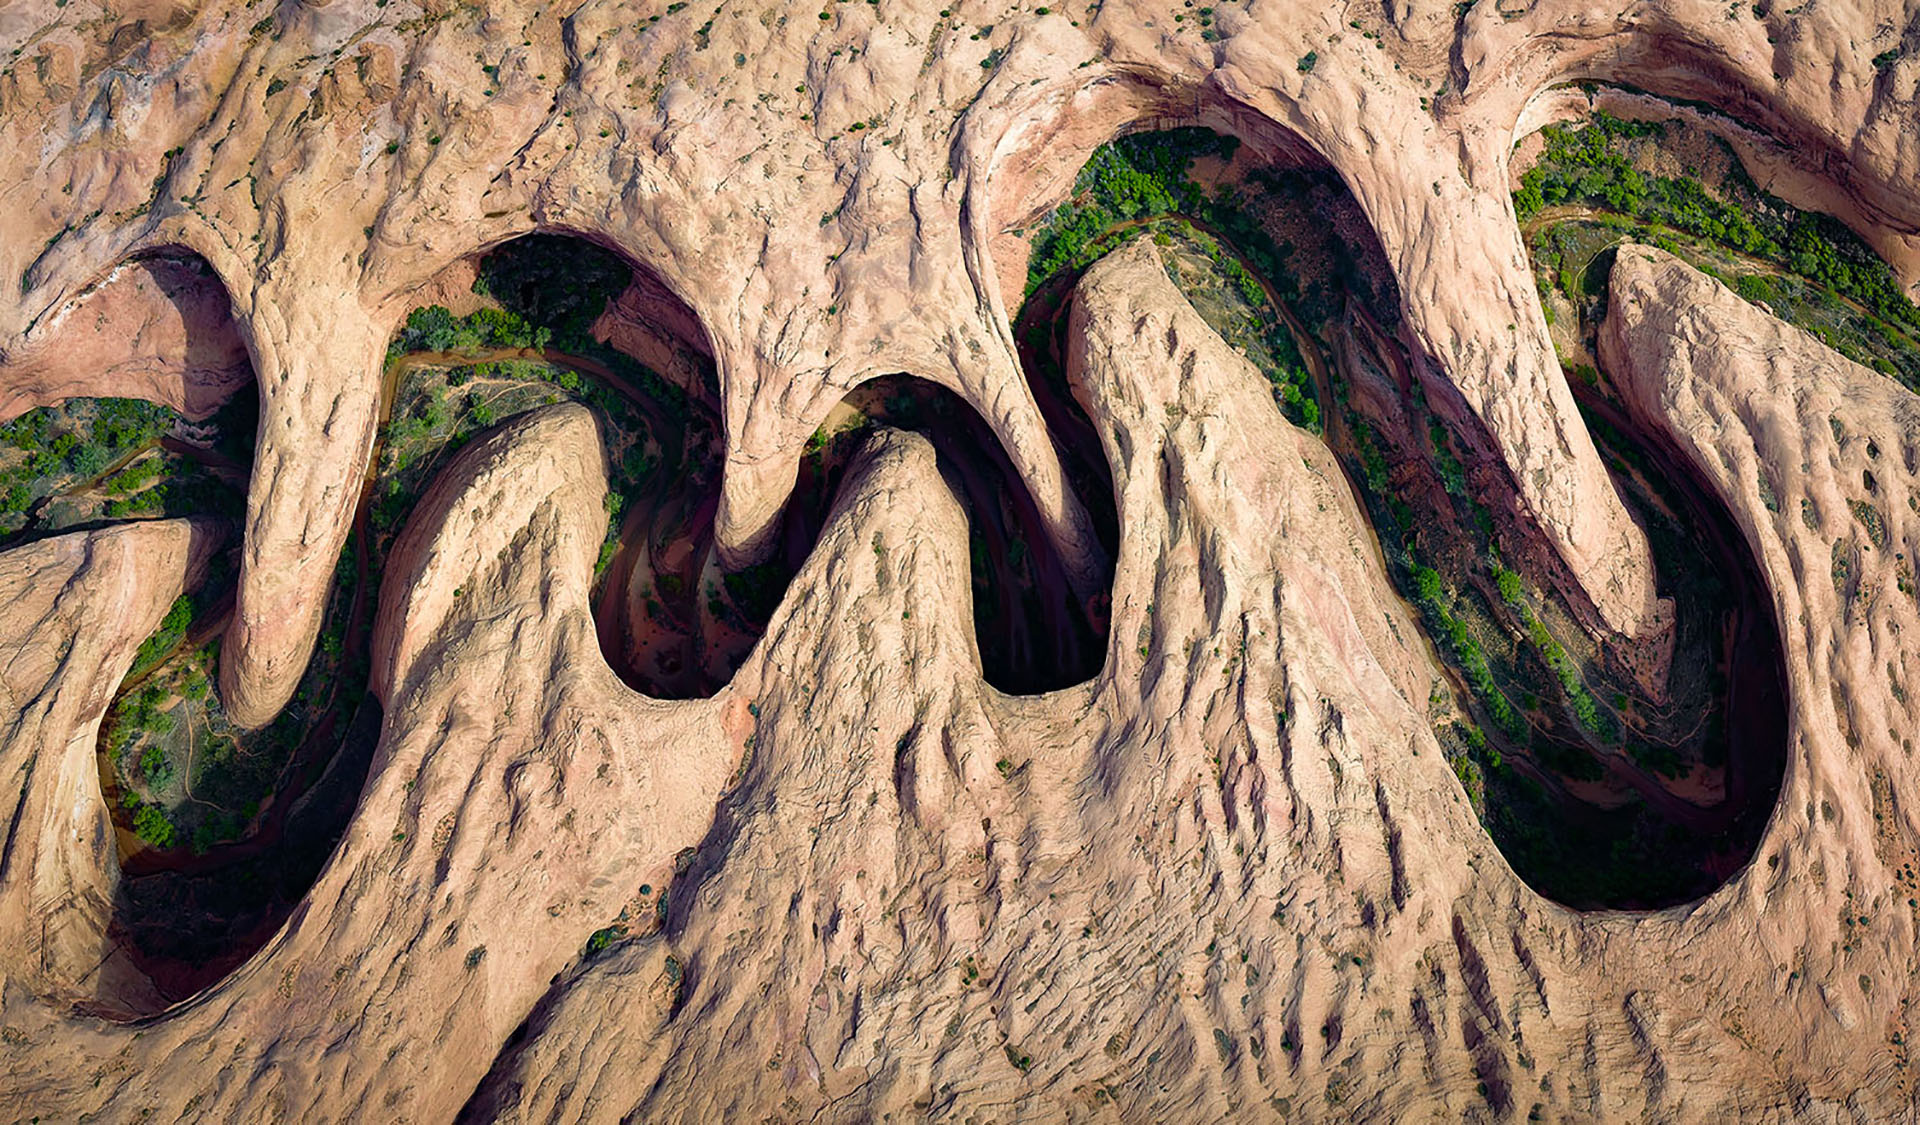 Utah's canyons are quite impressive as your walking through the bottom. But they are equally EXTRAORDINARY when viewed from above. On this image, you can see the many twists and turns this canyon has cut through the sandstone. The bottom of the canyon is full or riparian vegetation and is a whole different world from that above it.